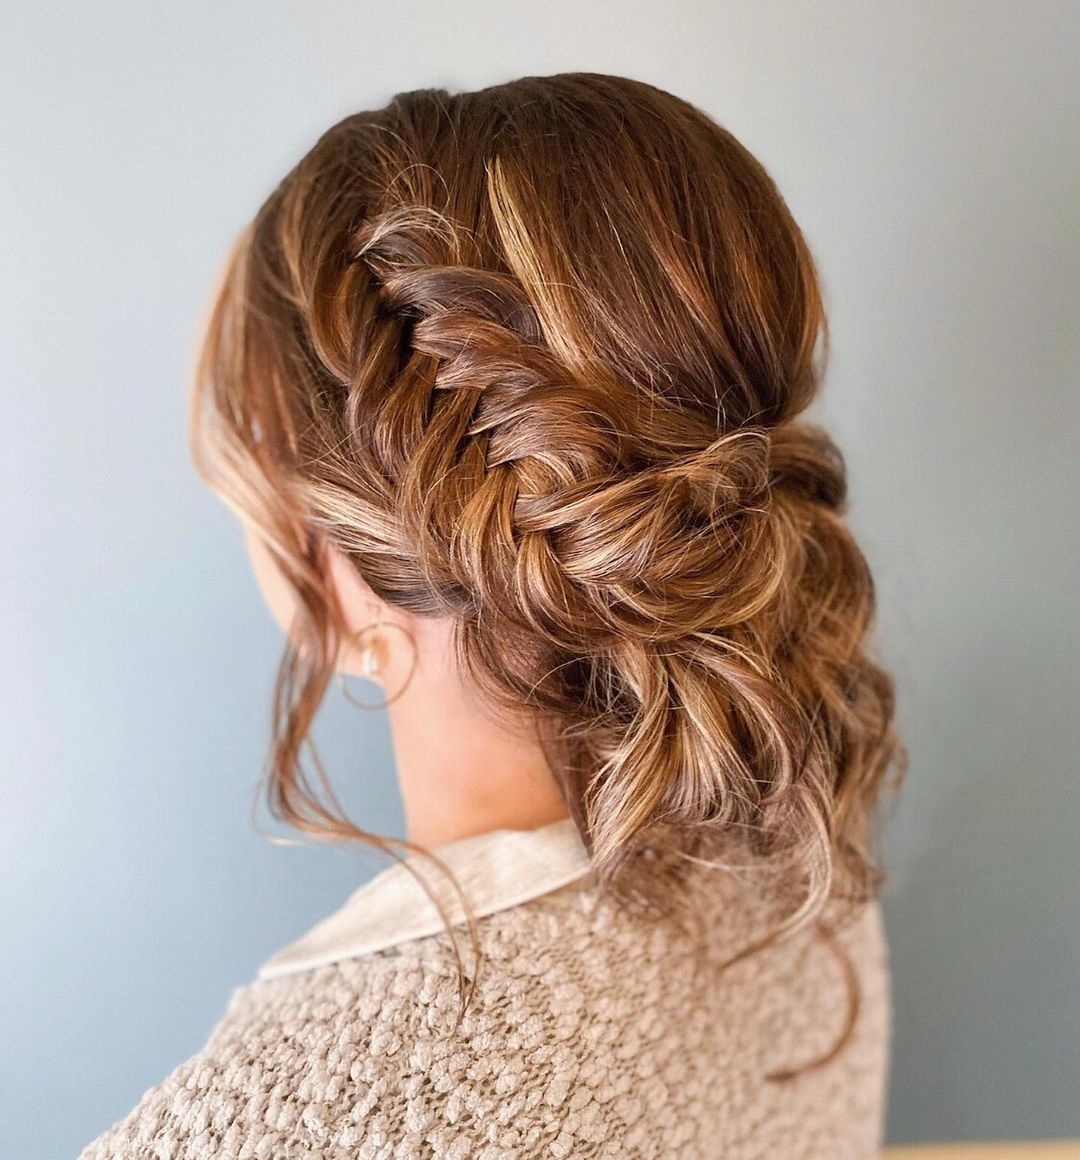 Cute Updo with a Braid for Long Hair